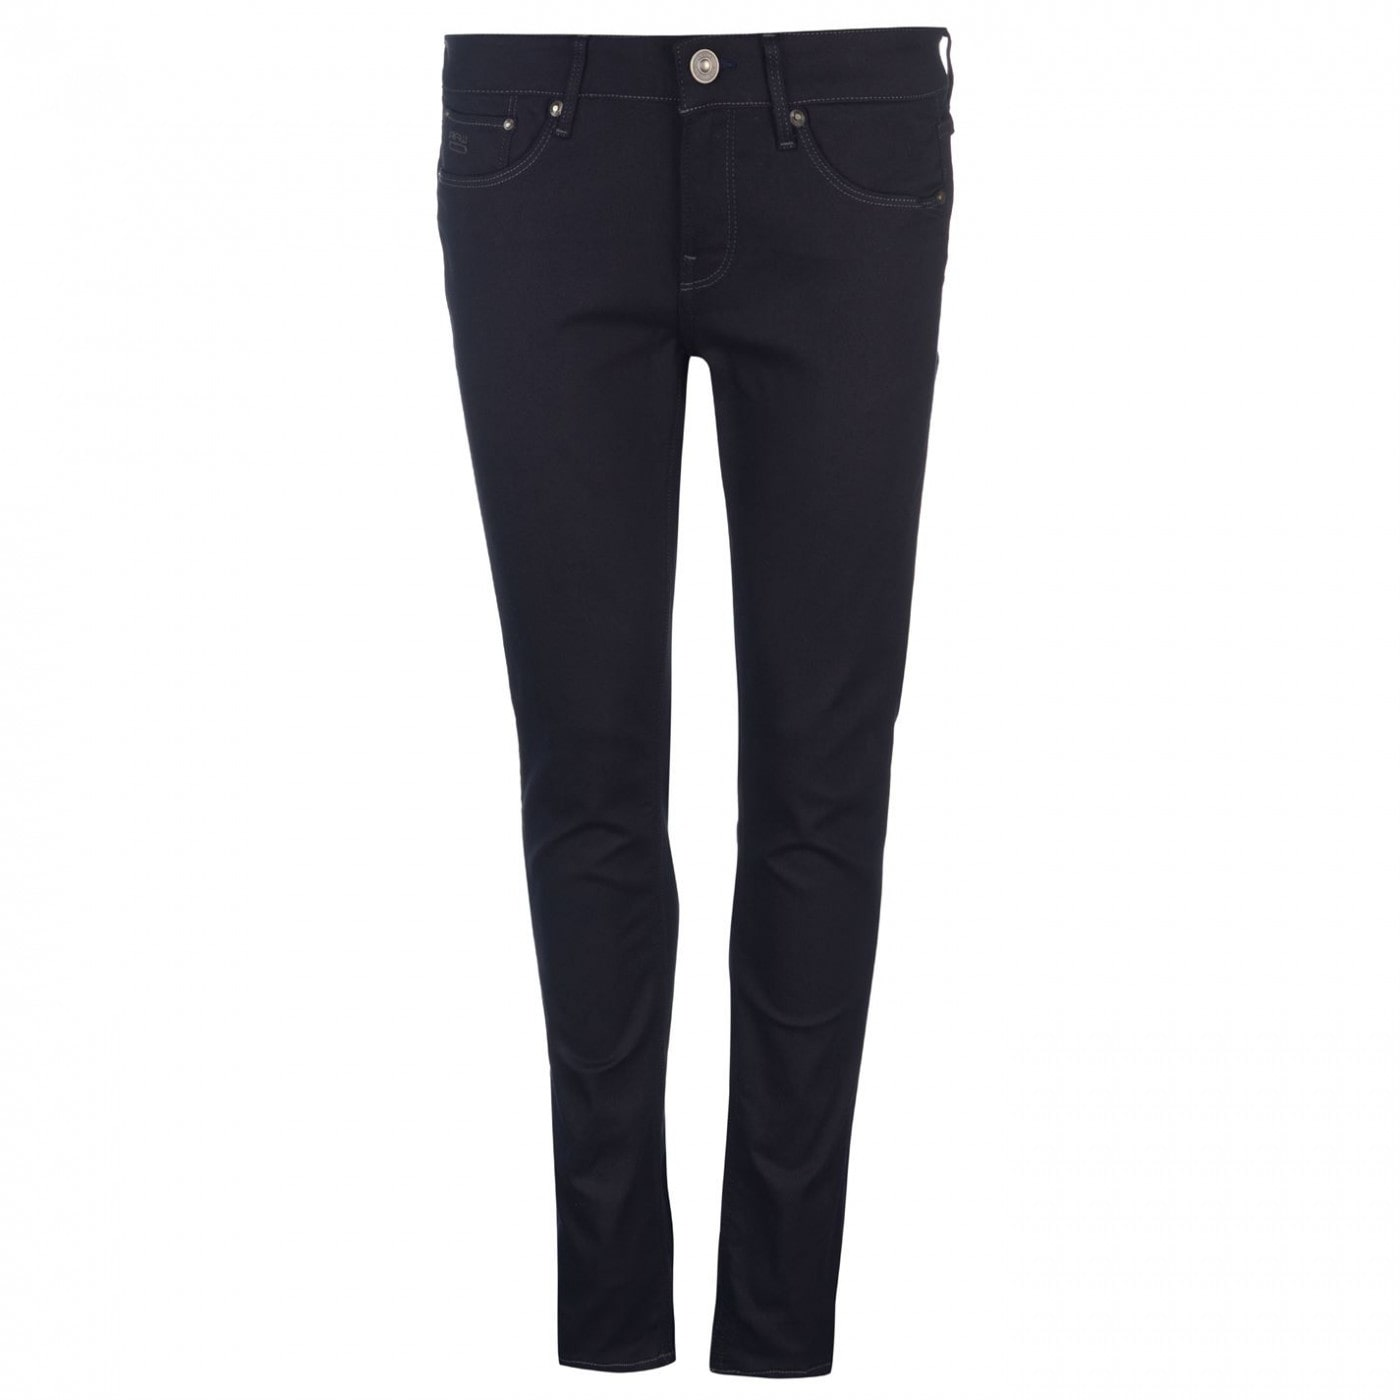 G Star 60654 Jeans